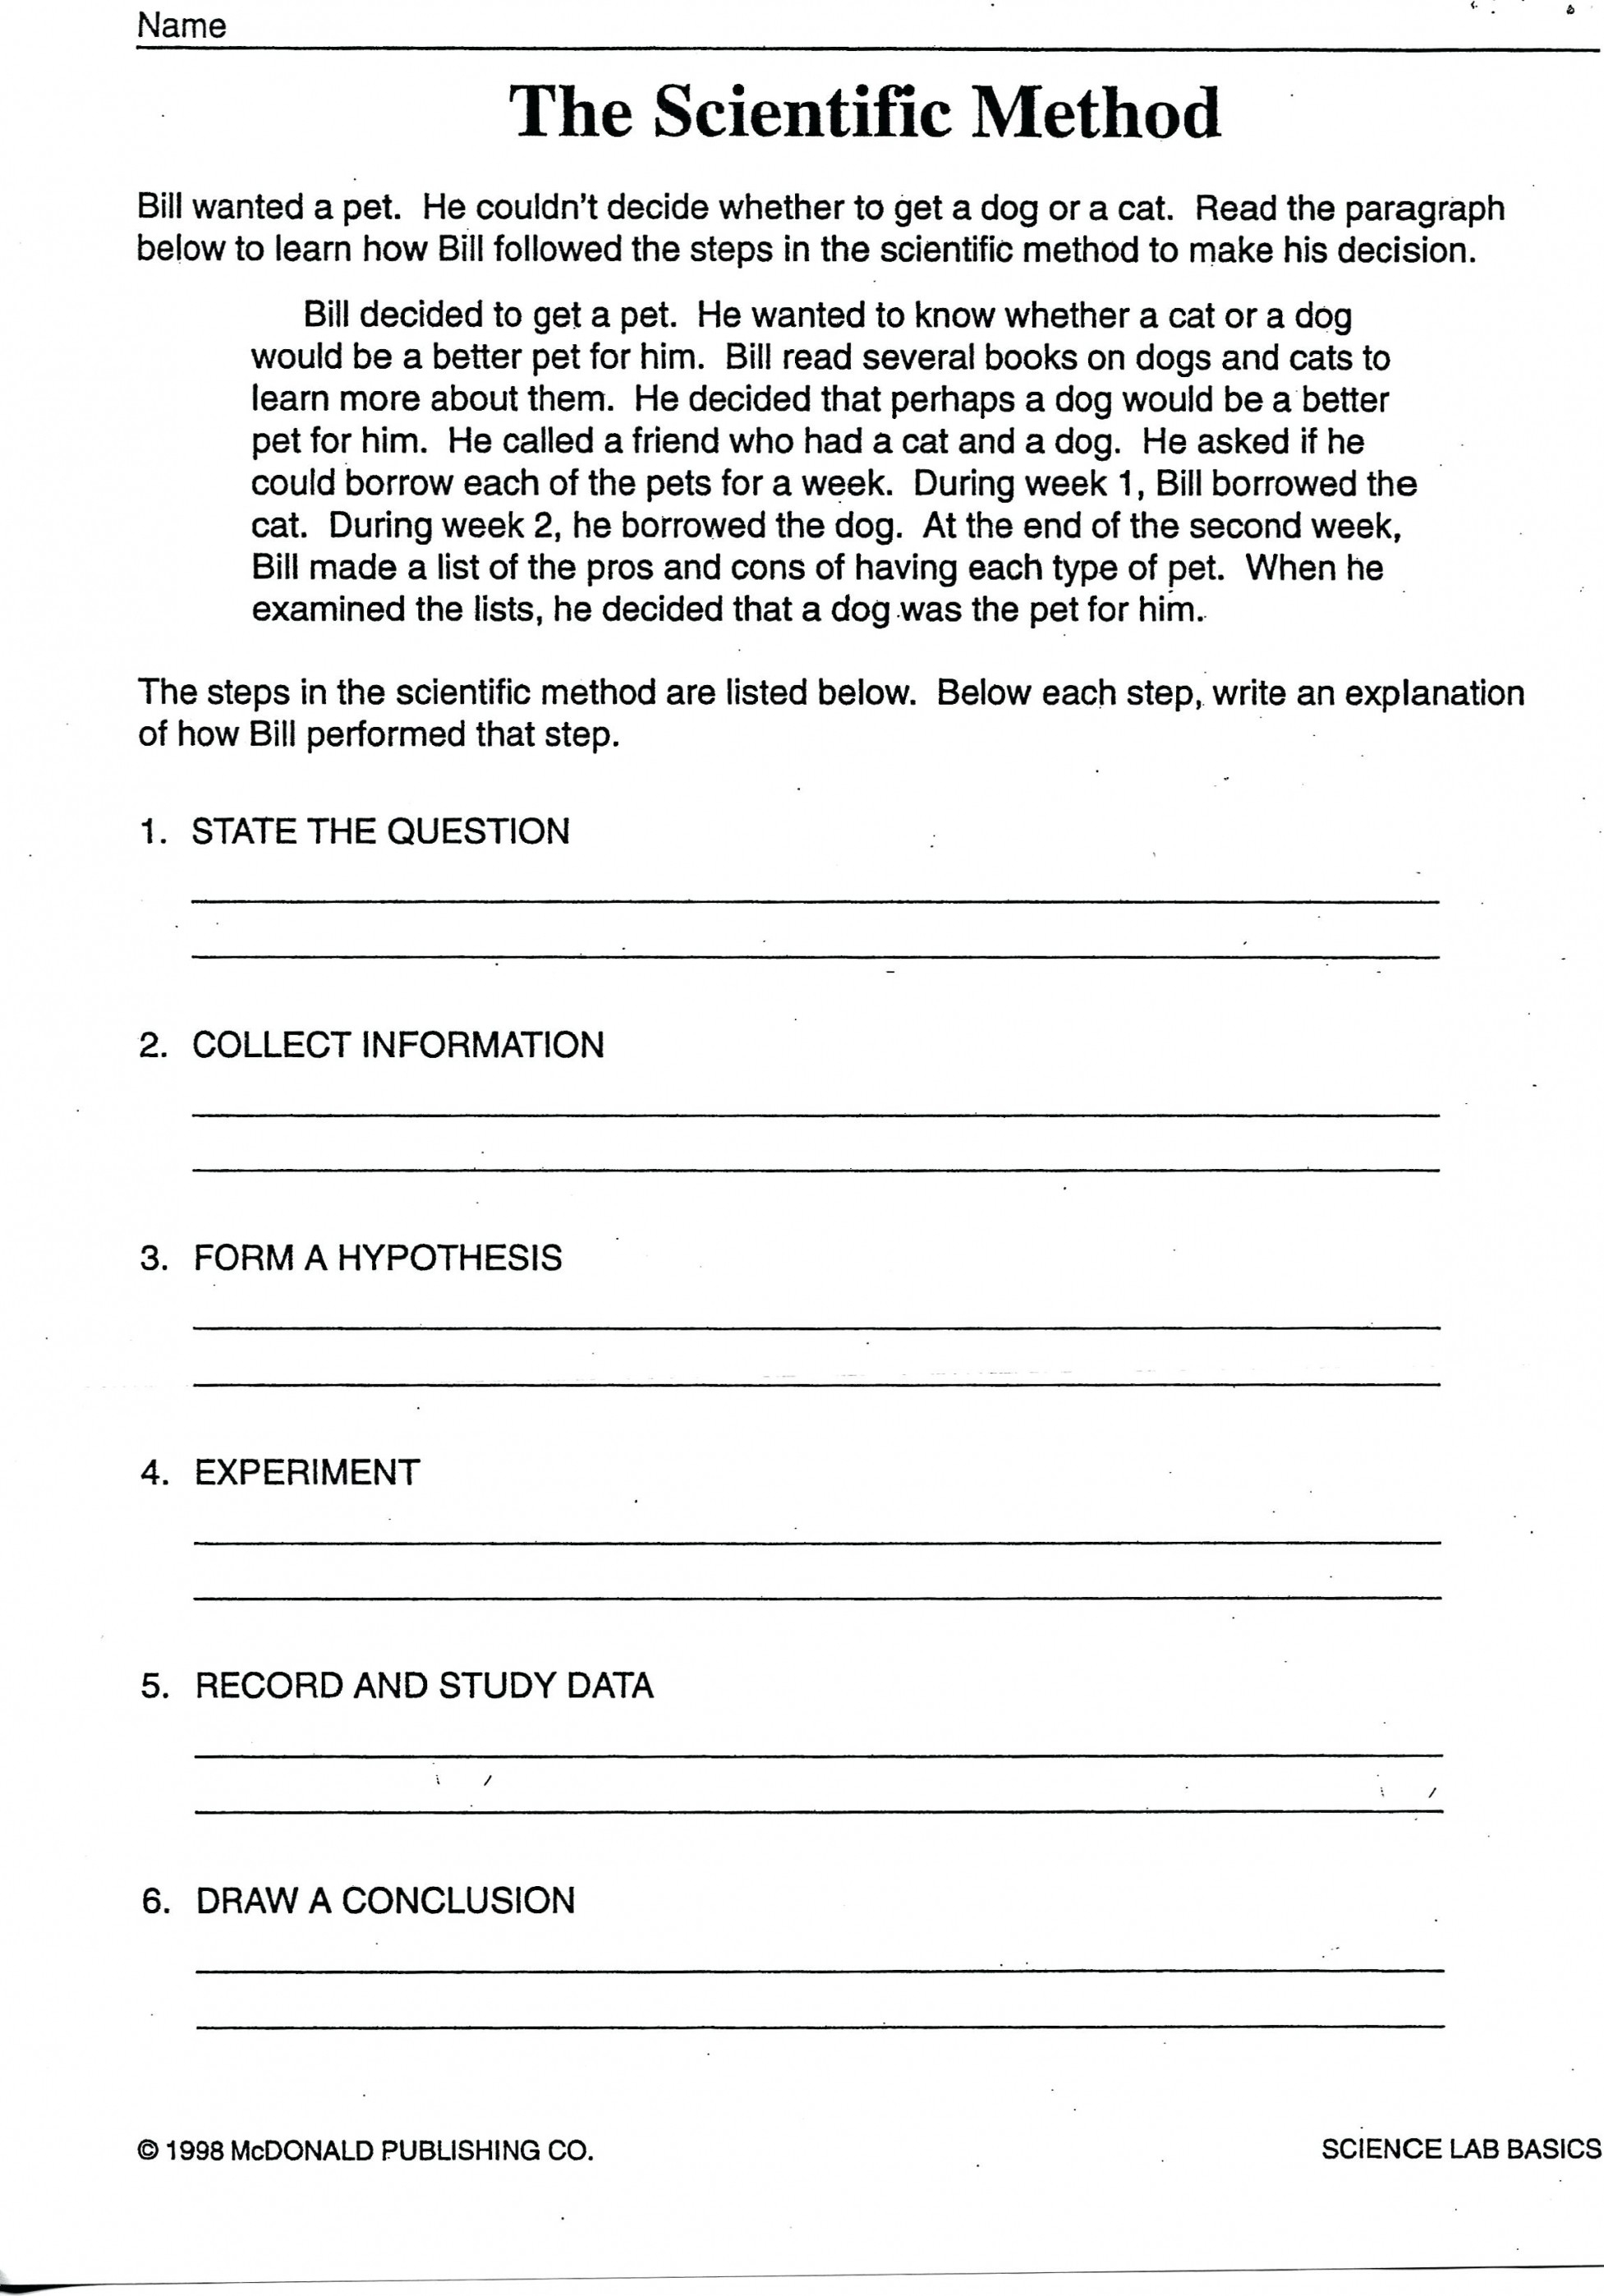 6Th Grade Math Games Printable Worksheets Word Problems Using Dice | 6Th Grade Printable Worksheets